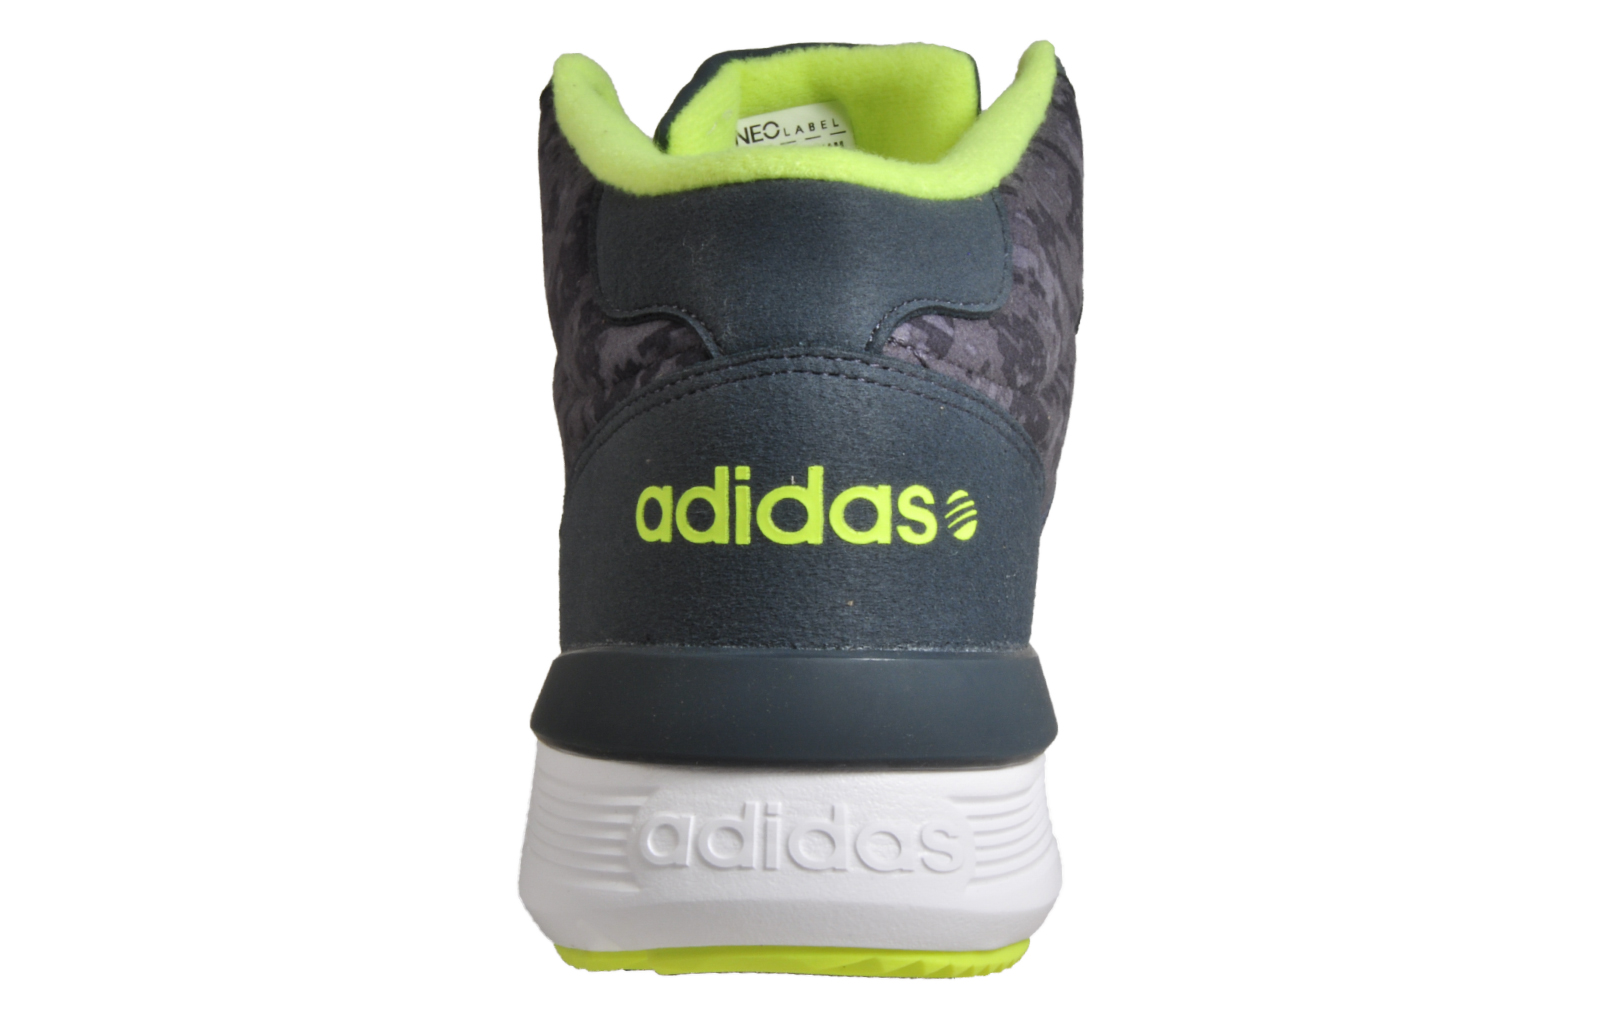 finest selection daecc 41d00 Adidas Lite Racer Mid Mens Athletic Fashion Gym Trainers Sneakers Grey